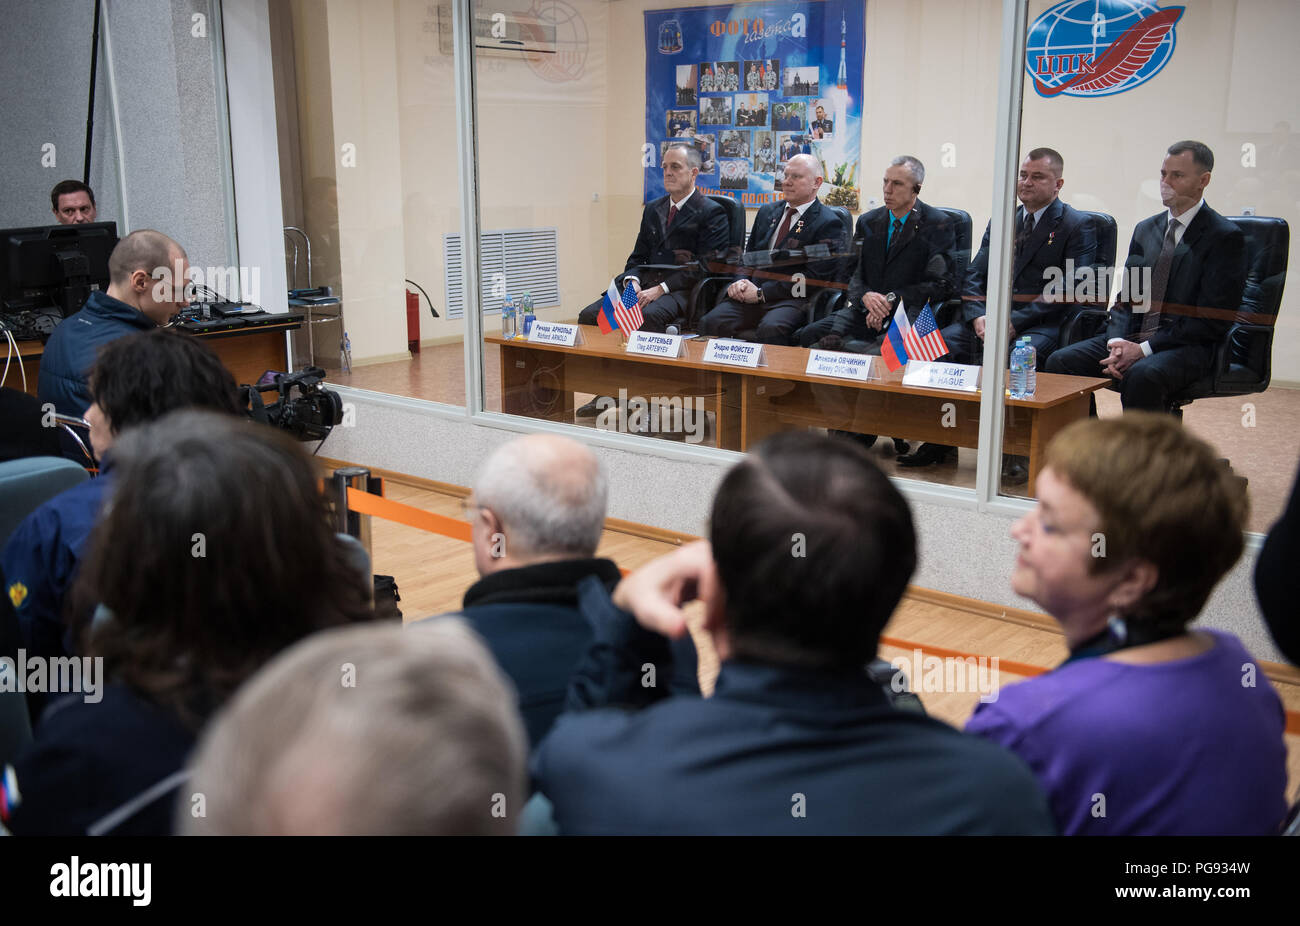 Expedition 55 prime crew members Ricky Arnold of NASA, left, Oleg Artemyev of Roscosmos, second from left, and Drew Feustel of NASA, center, are seen with backup crew members Alexey Ovchinin of Roscosmos, second from right, and Nick Hague of NASA, right, during the State Commission meeting to approve the Soyuz launch of Expedition 55 to the International Space Station, Tuesday, March 20, 2018. Arnold, Artemyev, and Feustel are scheduled to launch to the International Space Station aboard the Soyuz MS-08 spacecraft on Wednesday, March, 21. - Stock Image